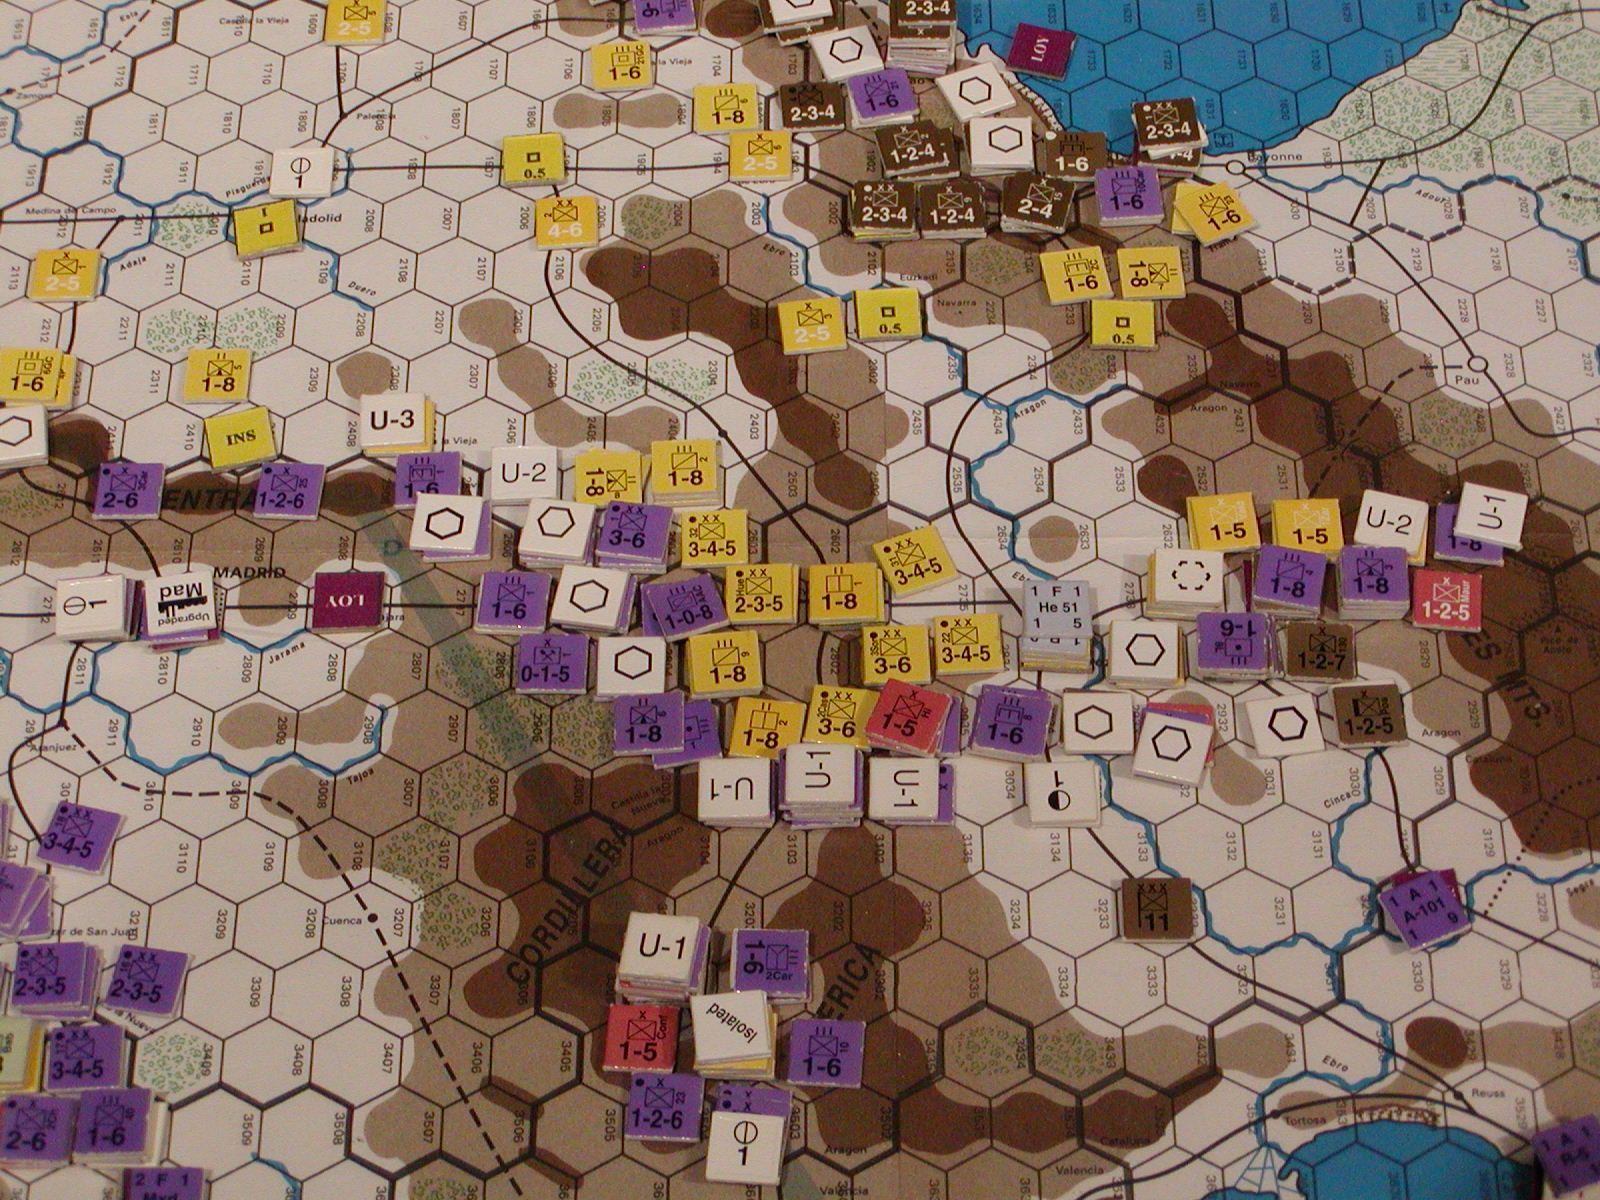 FWtBT No 4 - FEB II 37: Tactical: The Teruel pocket contracts for last stand.